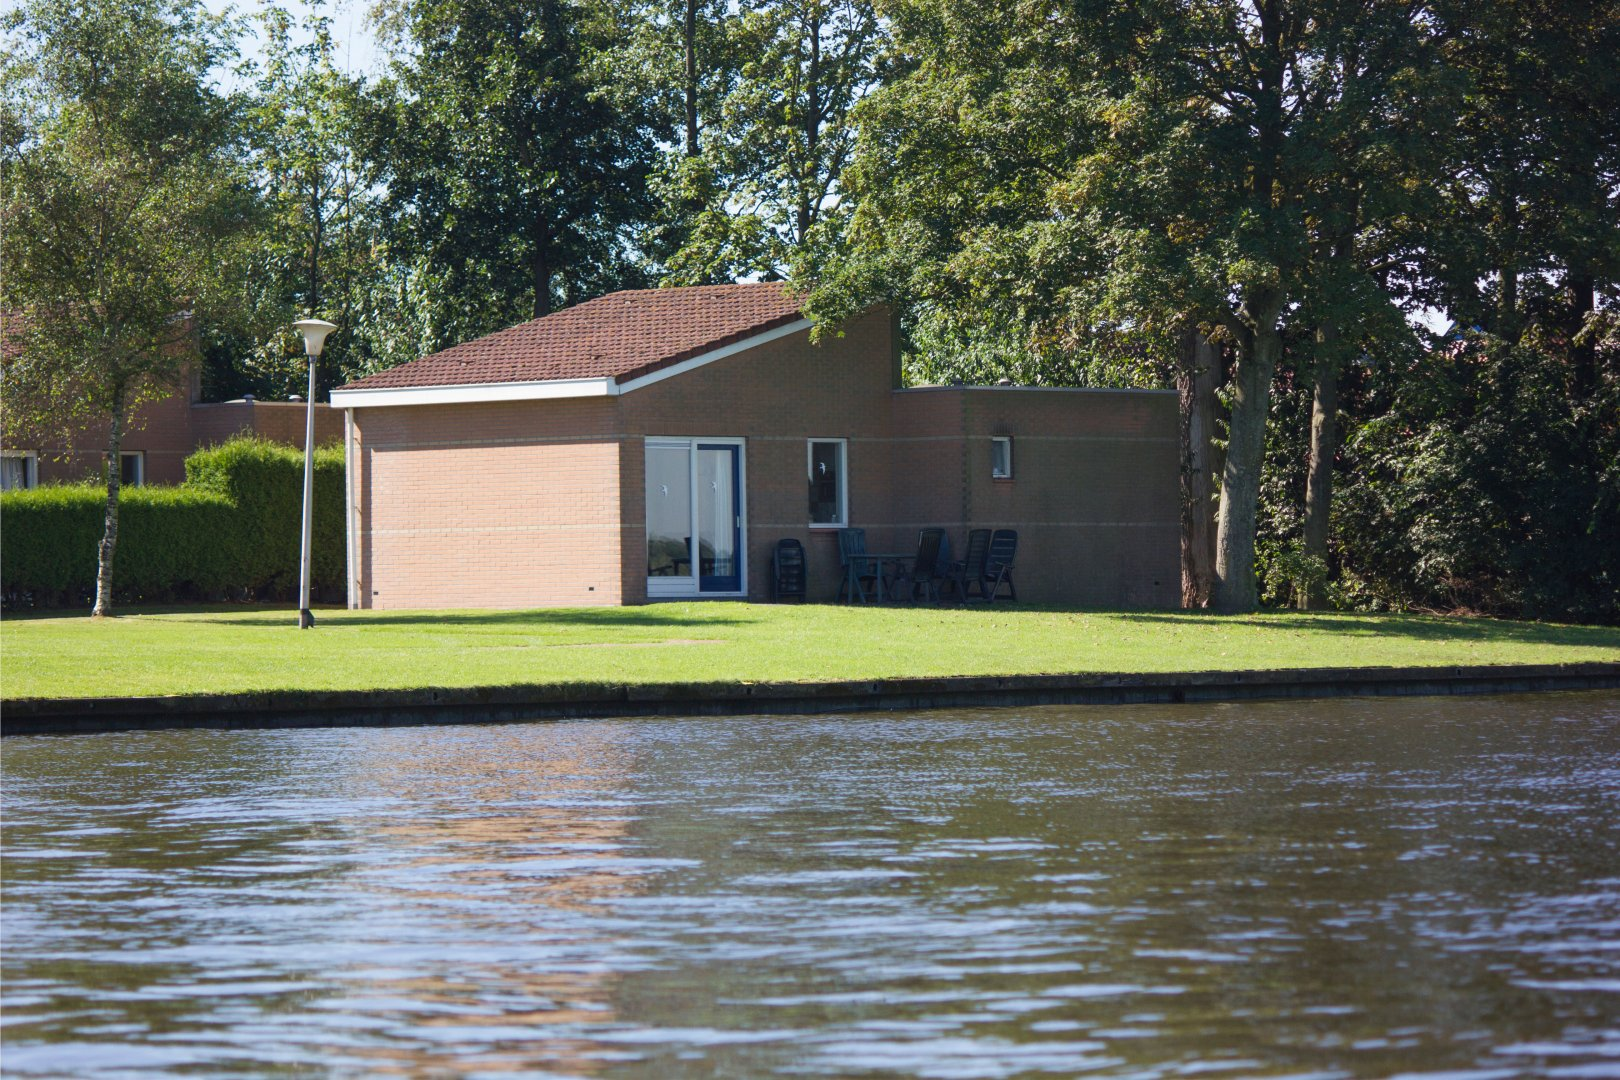 Bungalows​ ​in​ ​Holland​ ​mieten​ - Ferienpark Bergumermeer in Holland